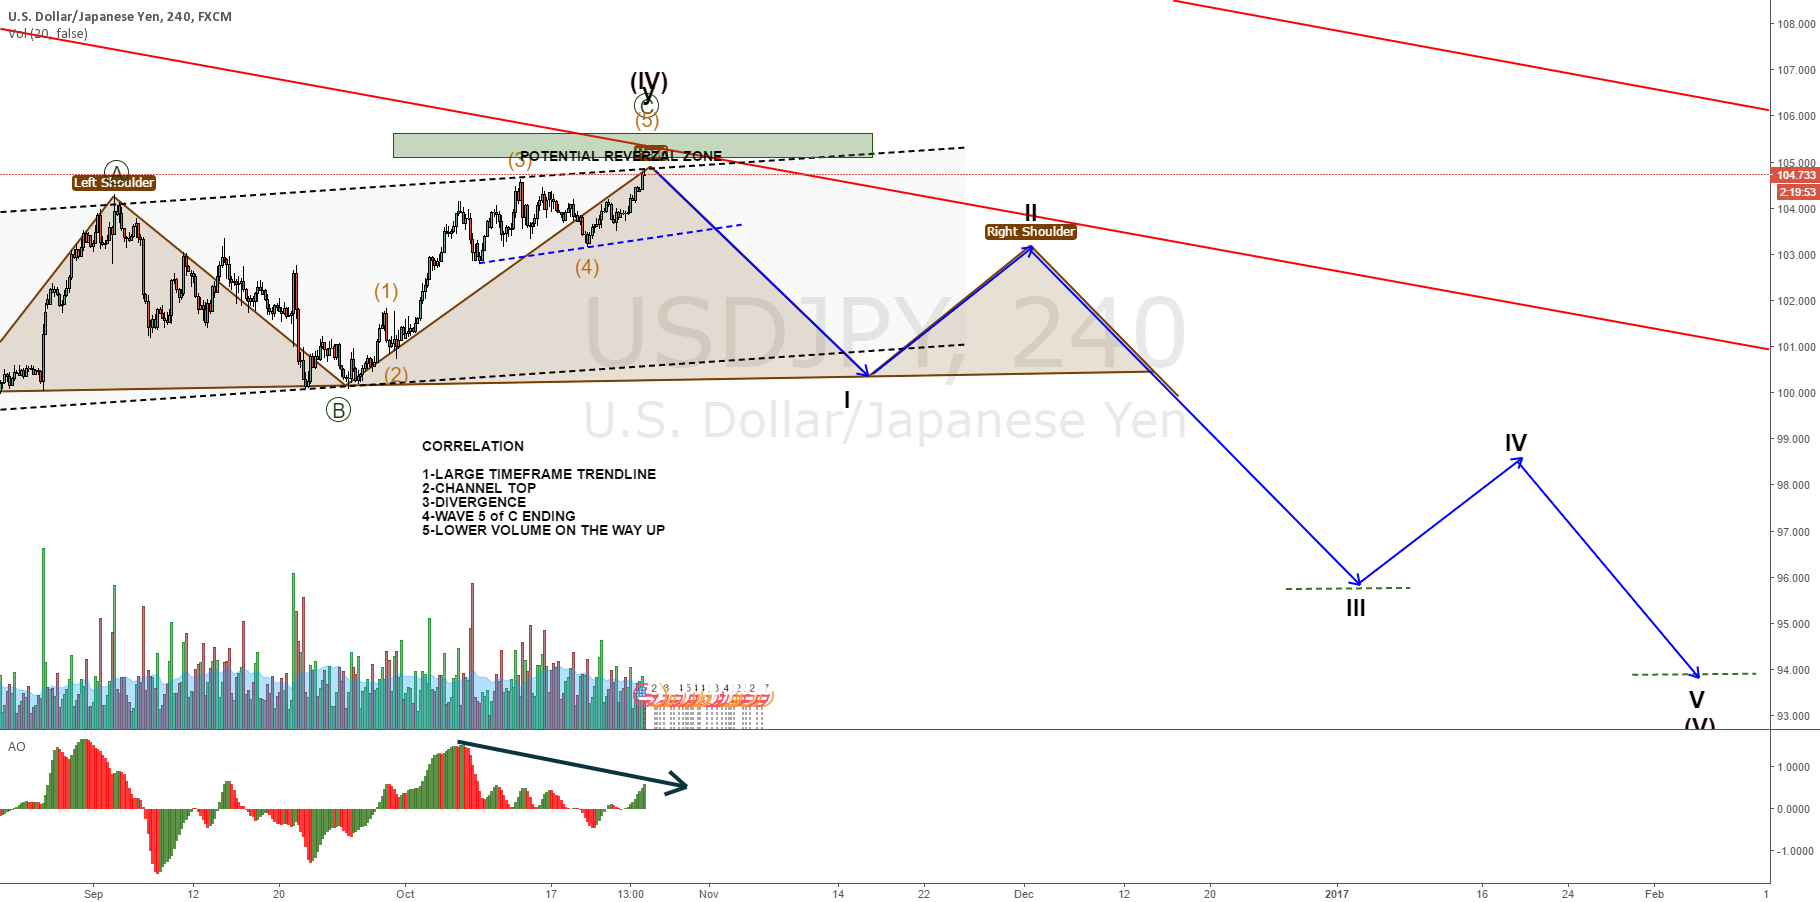 USDJPY same bias, adjusted count